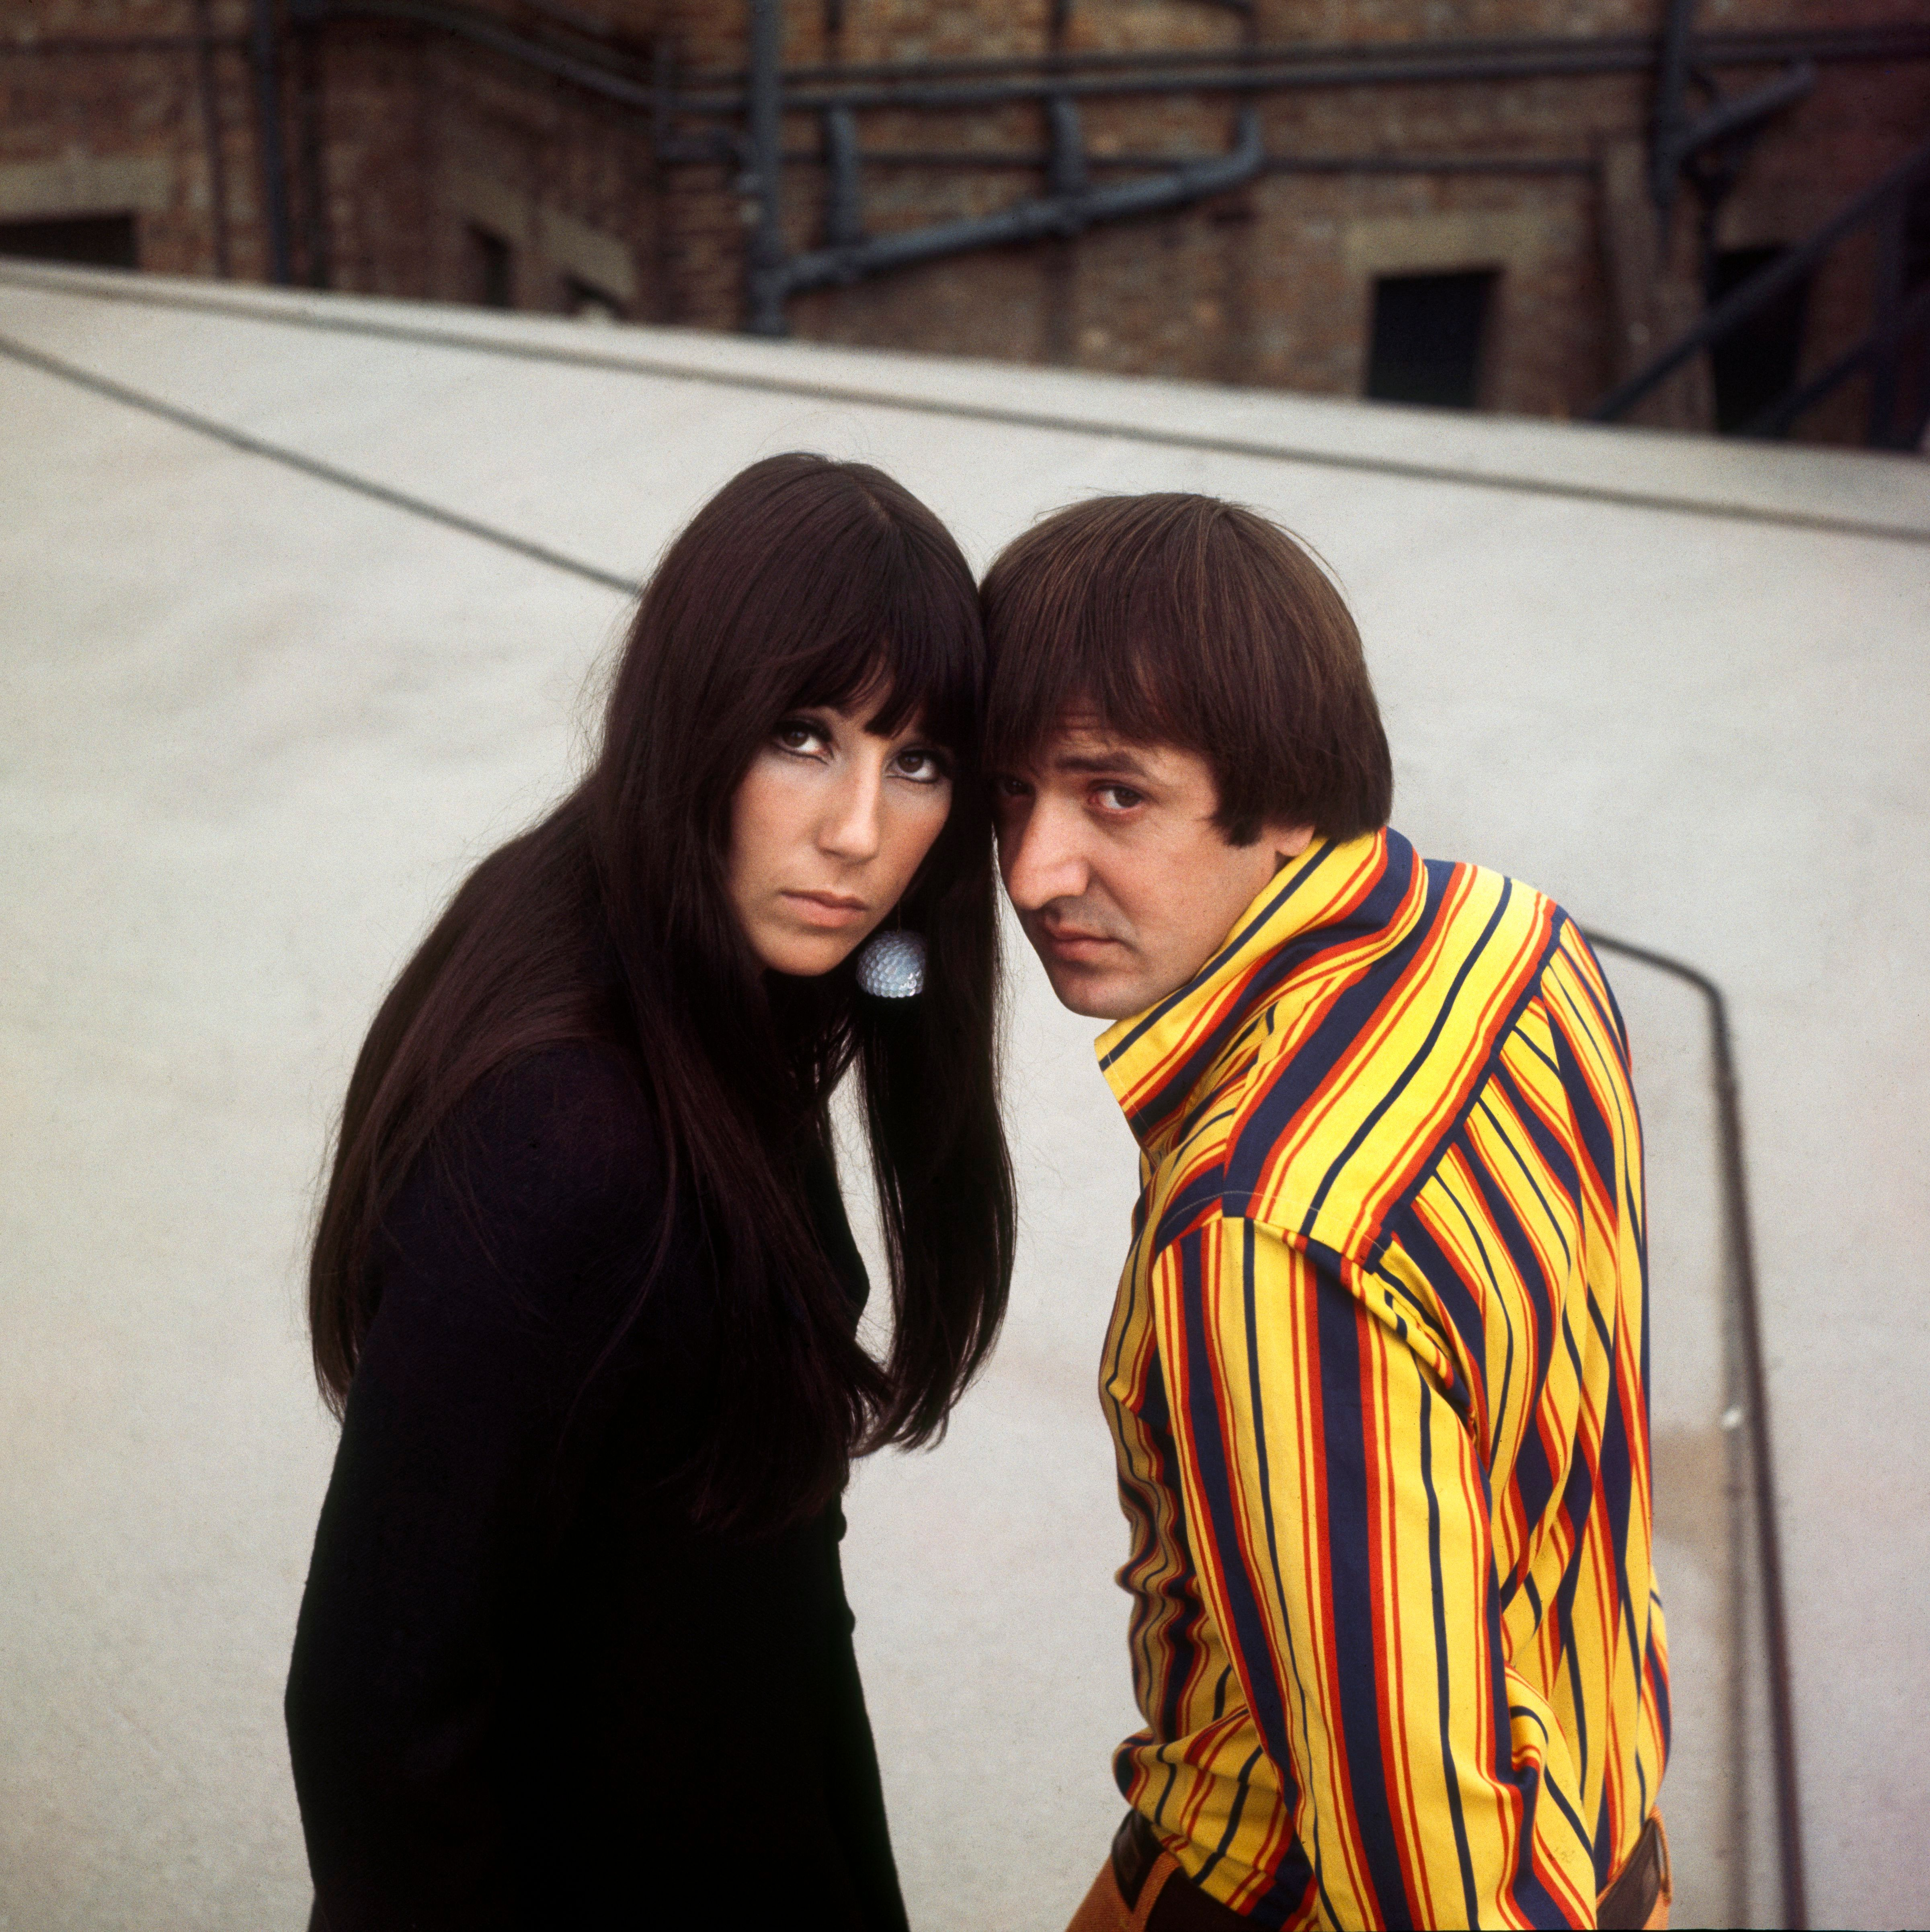 Cher and Sonny Bono in London on January 1, 1973 | Photo: George Wilkes/Hulton Archive/Getty Images